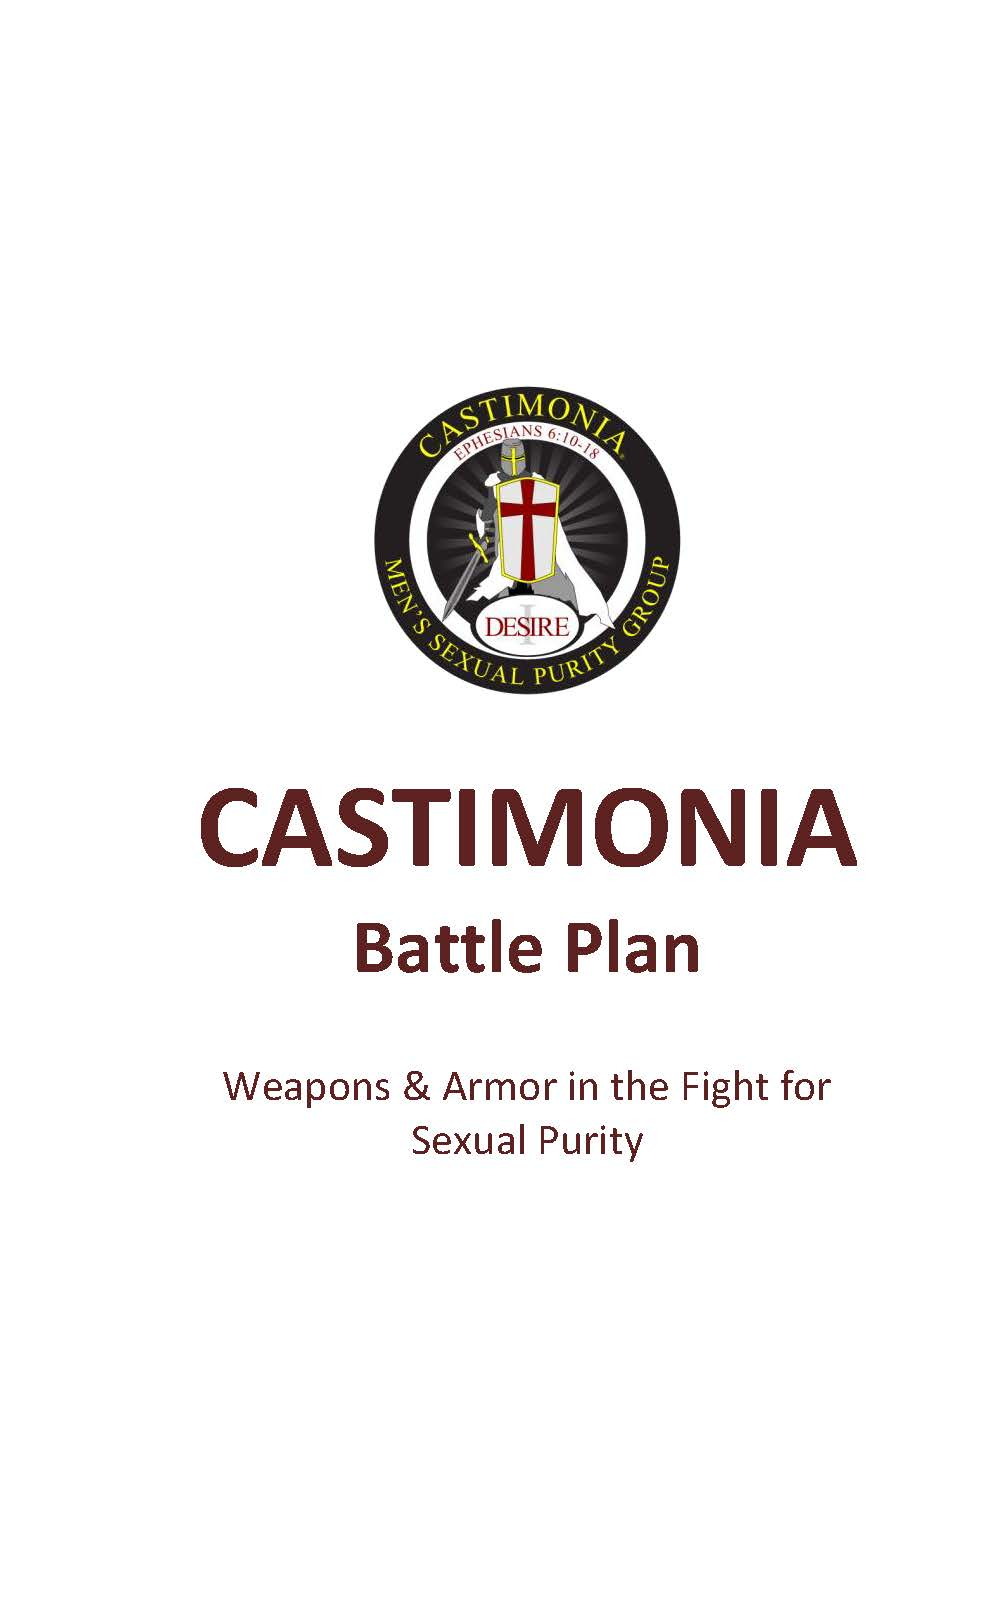 Castimonia: Battle Plan | ARMATURAM